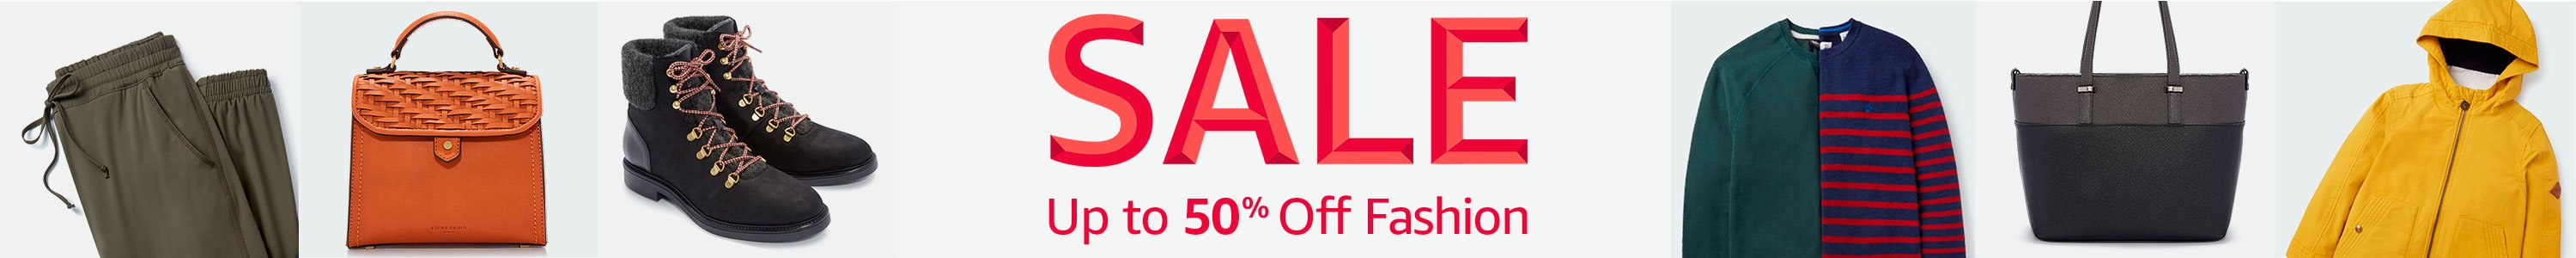 Fashion Sale: up to 50% off